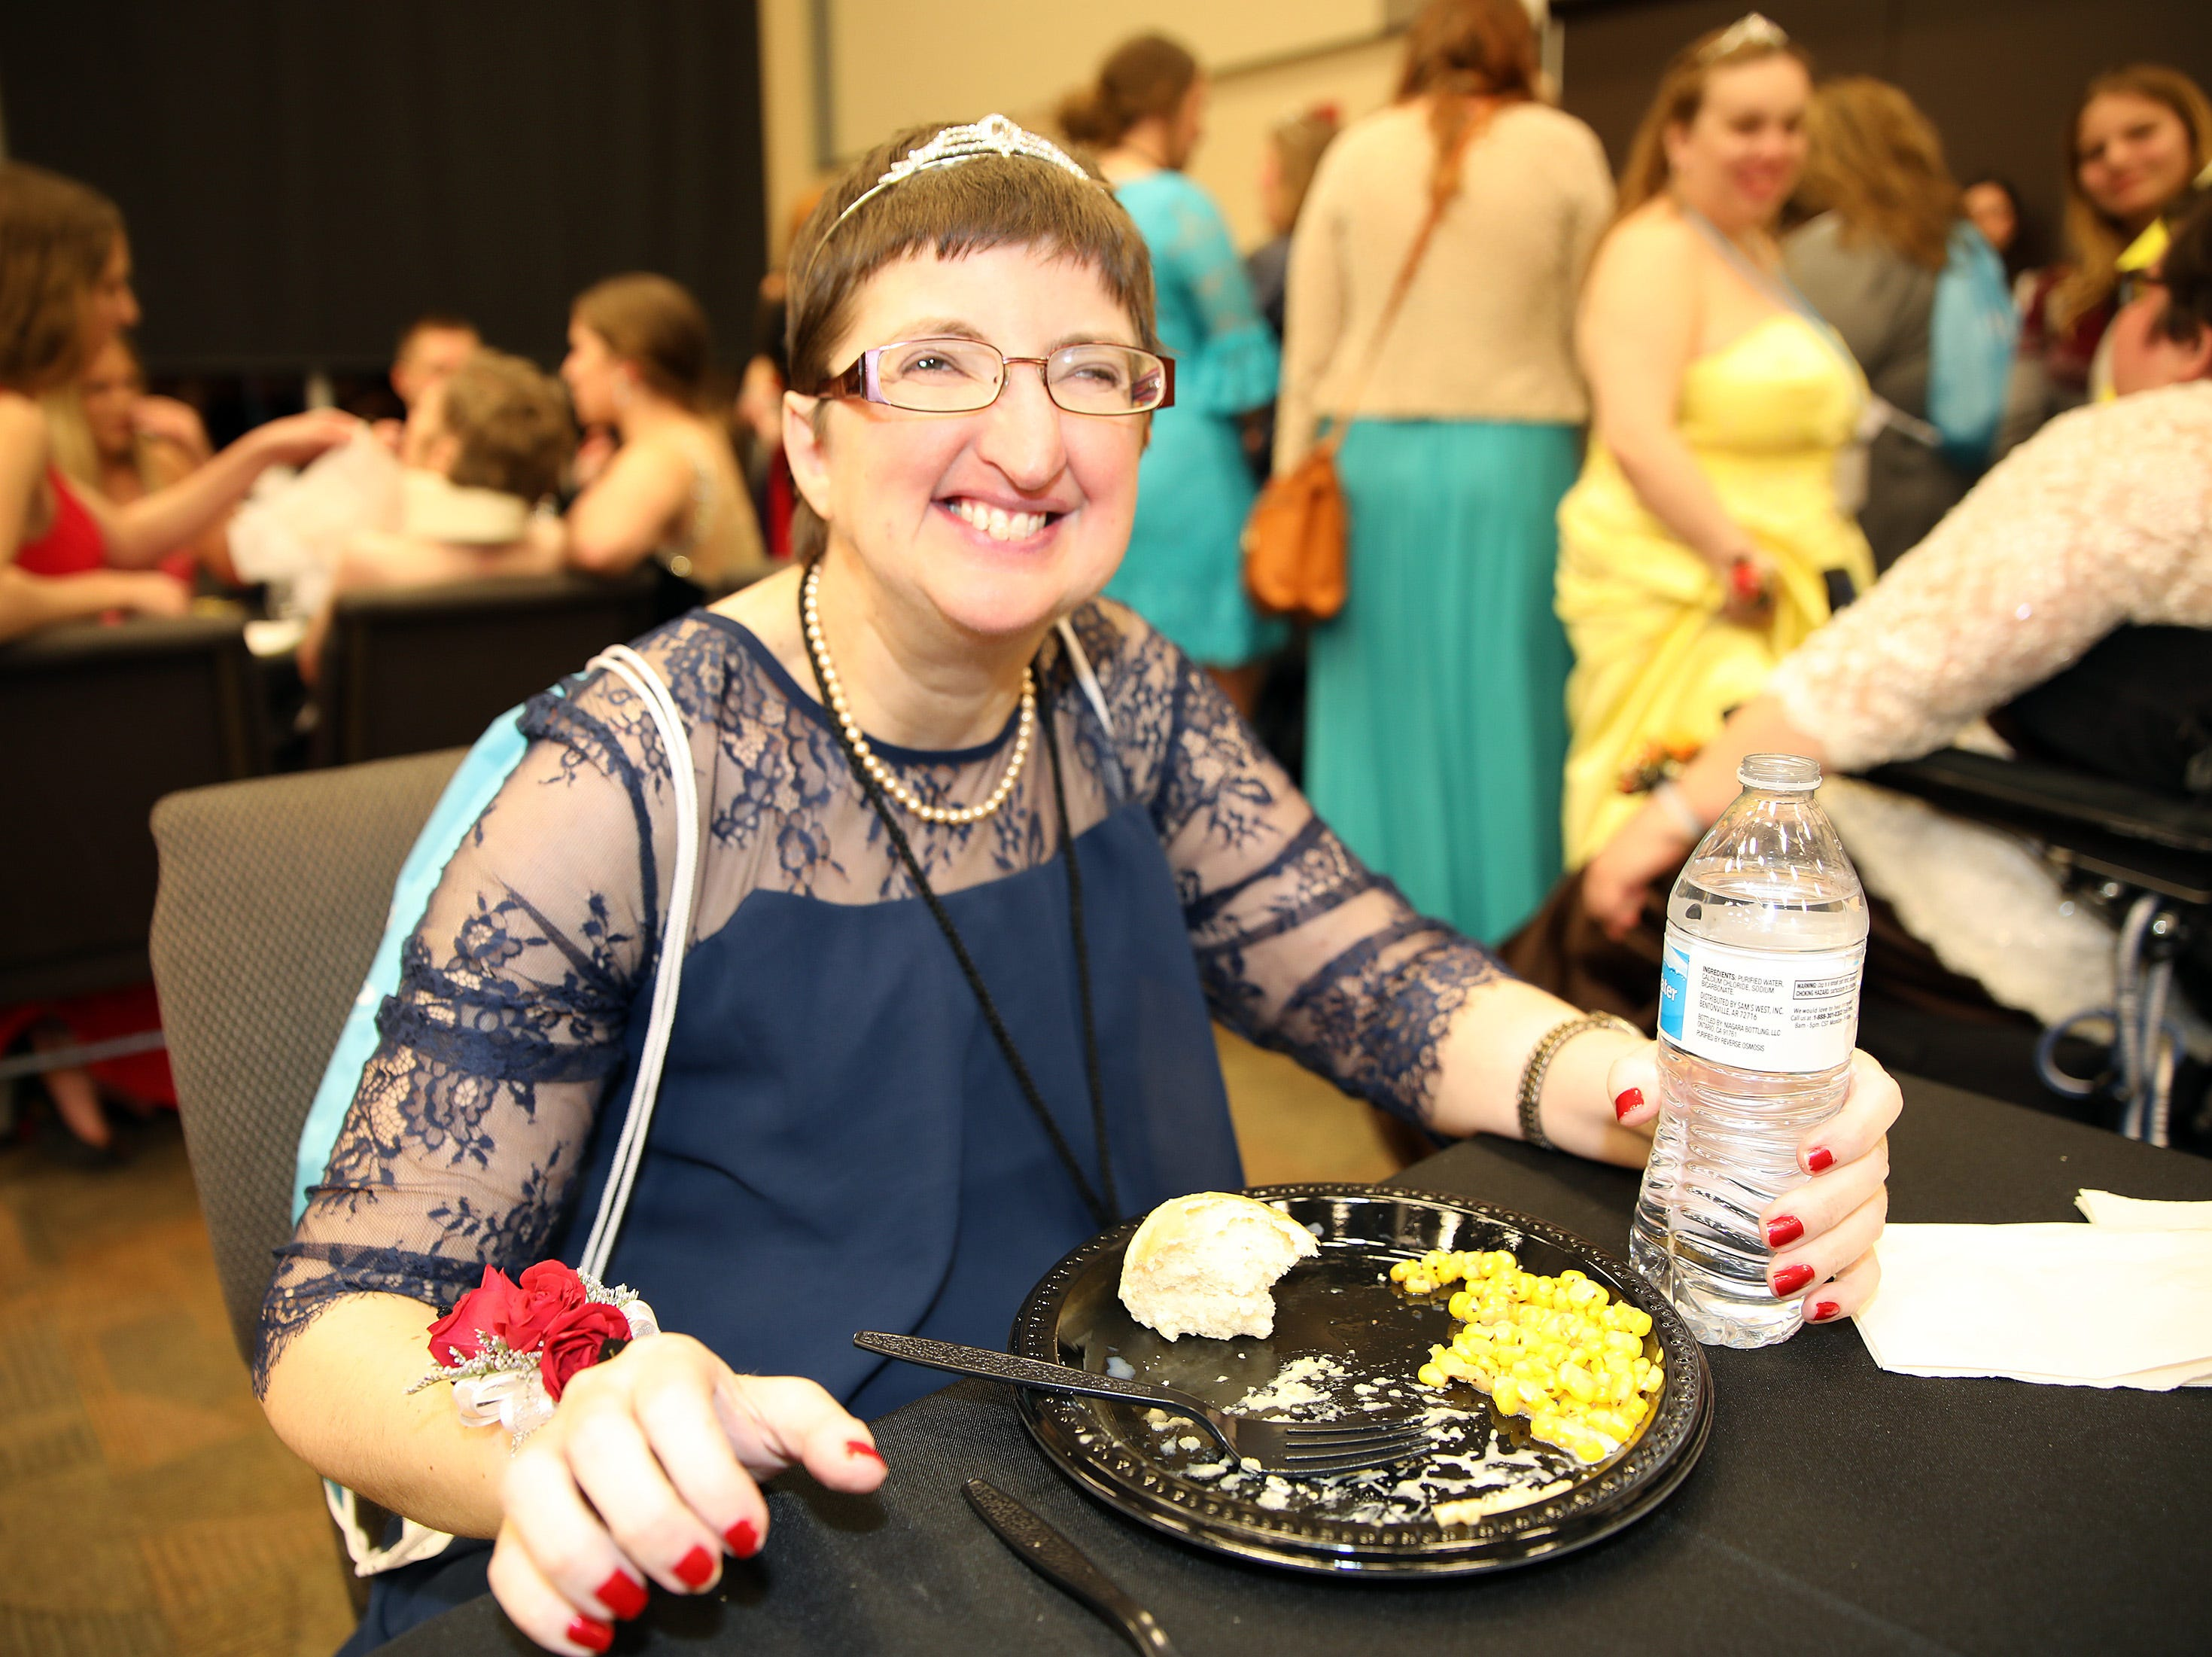 Angie Pickett of Ankeny enjoys dinner during the Night to Shine event at Prairie Ridge Church in Ankeny on Friday, Feb. 8, 2019. Sponsored by the Tim Tebow Foundation, the event for adults with special needs features a prom-like atmosphere with dancing, limo rides, food and more.